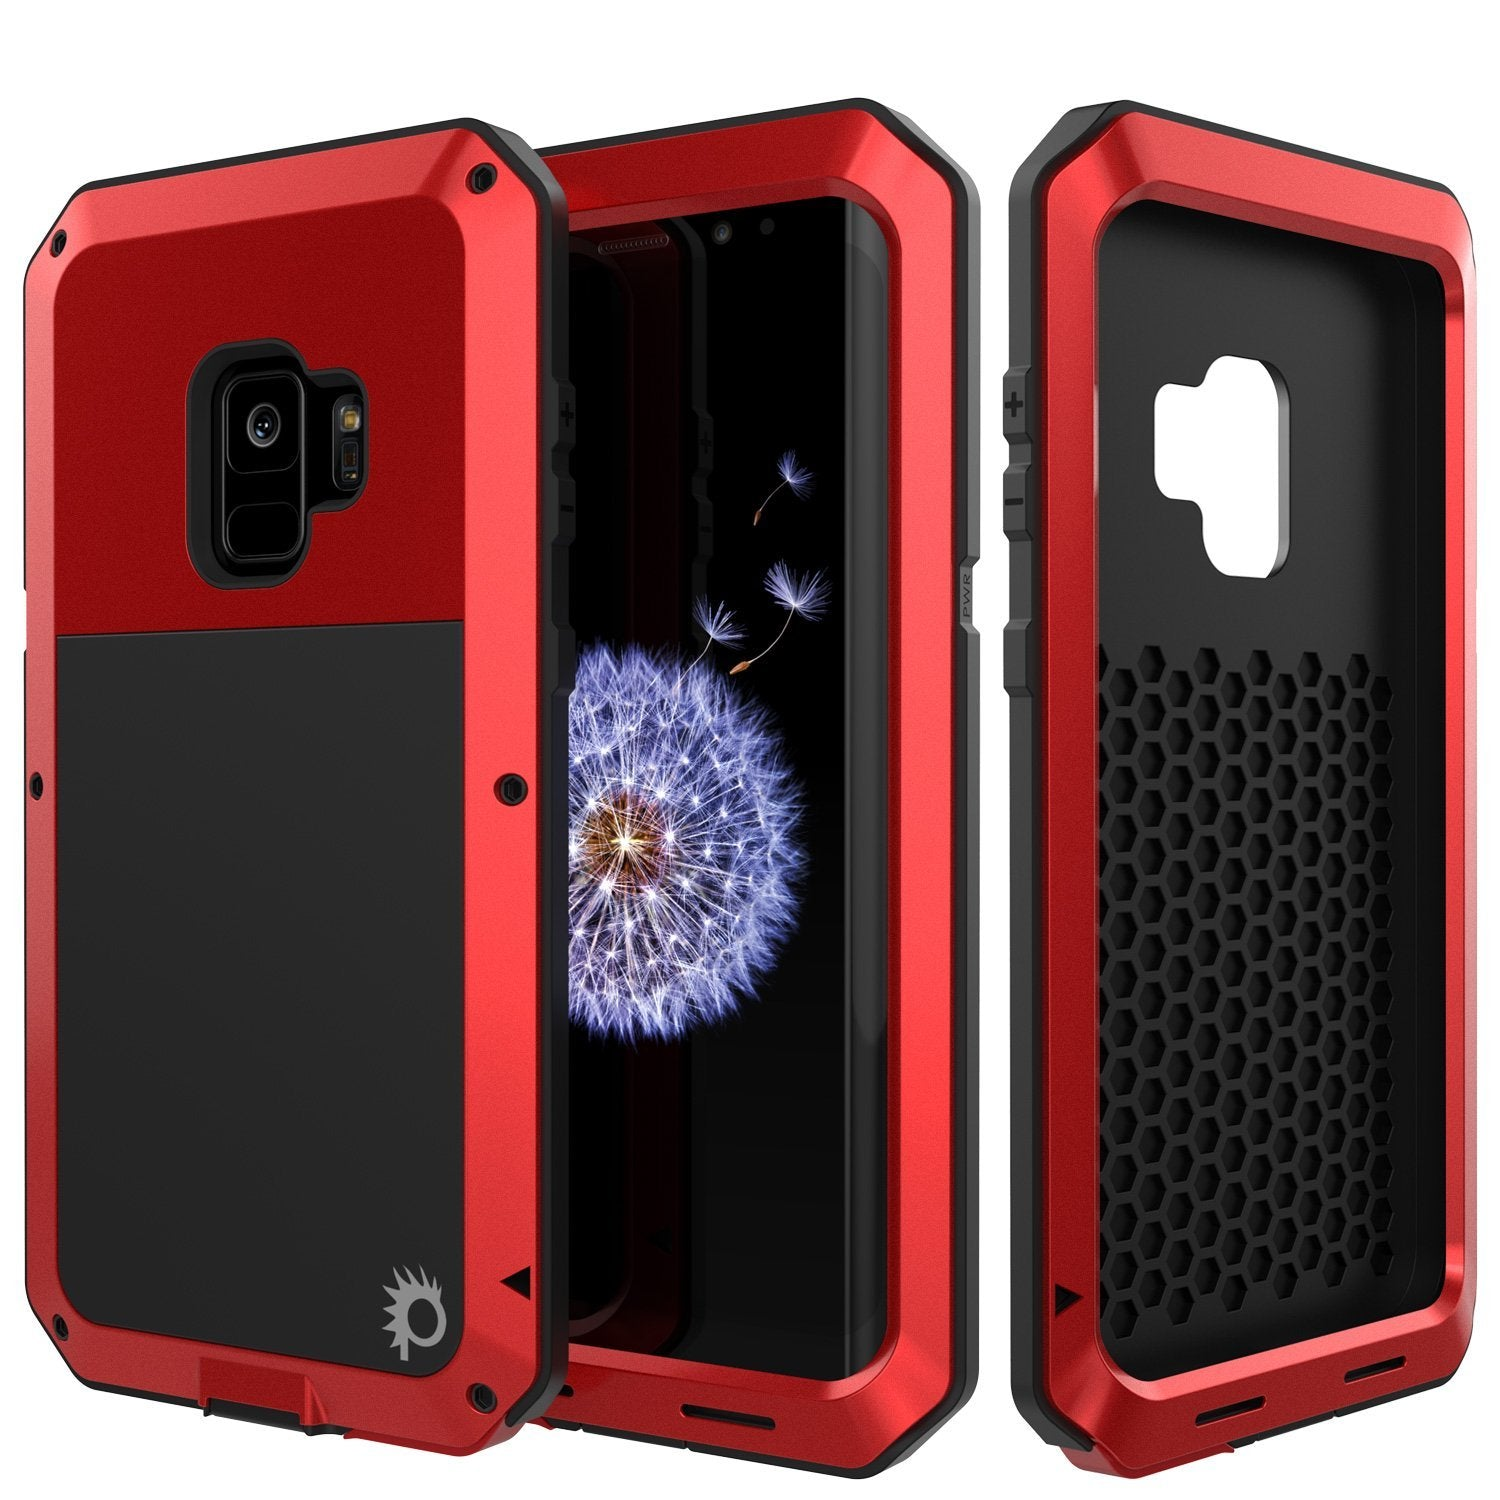 Galaxy S10e Metal Case, Heavy Duty Military Grade Rugged Armor Cover [Red]